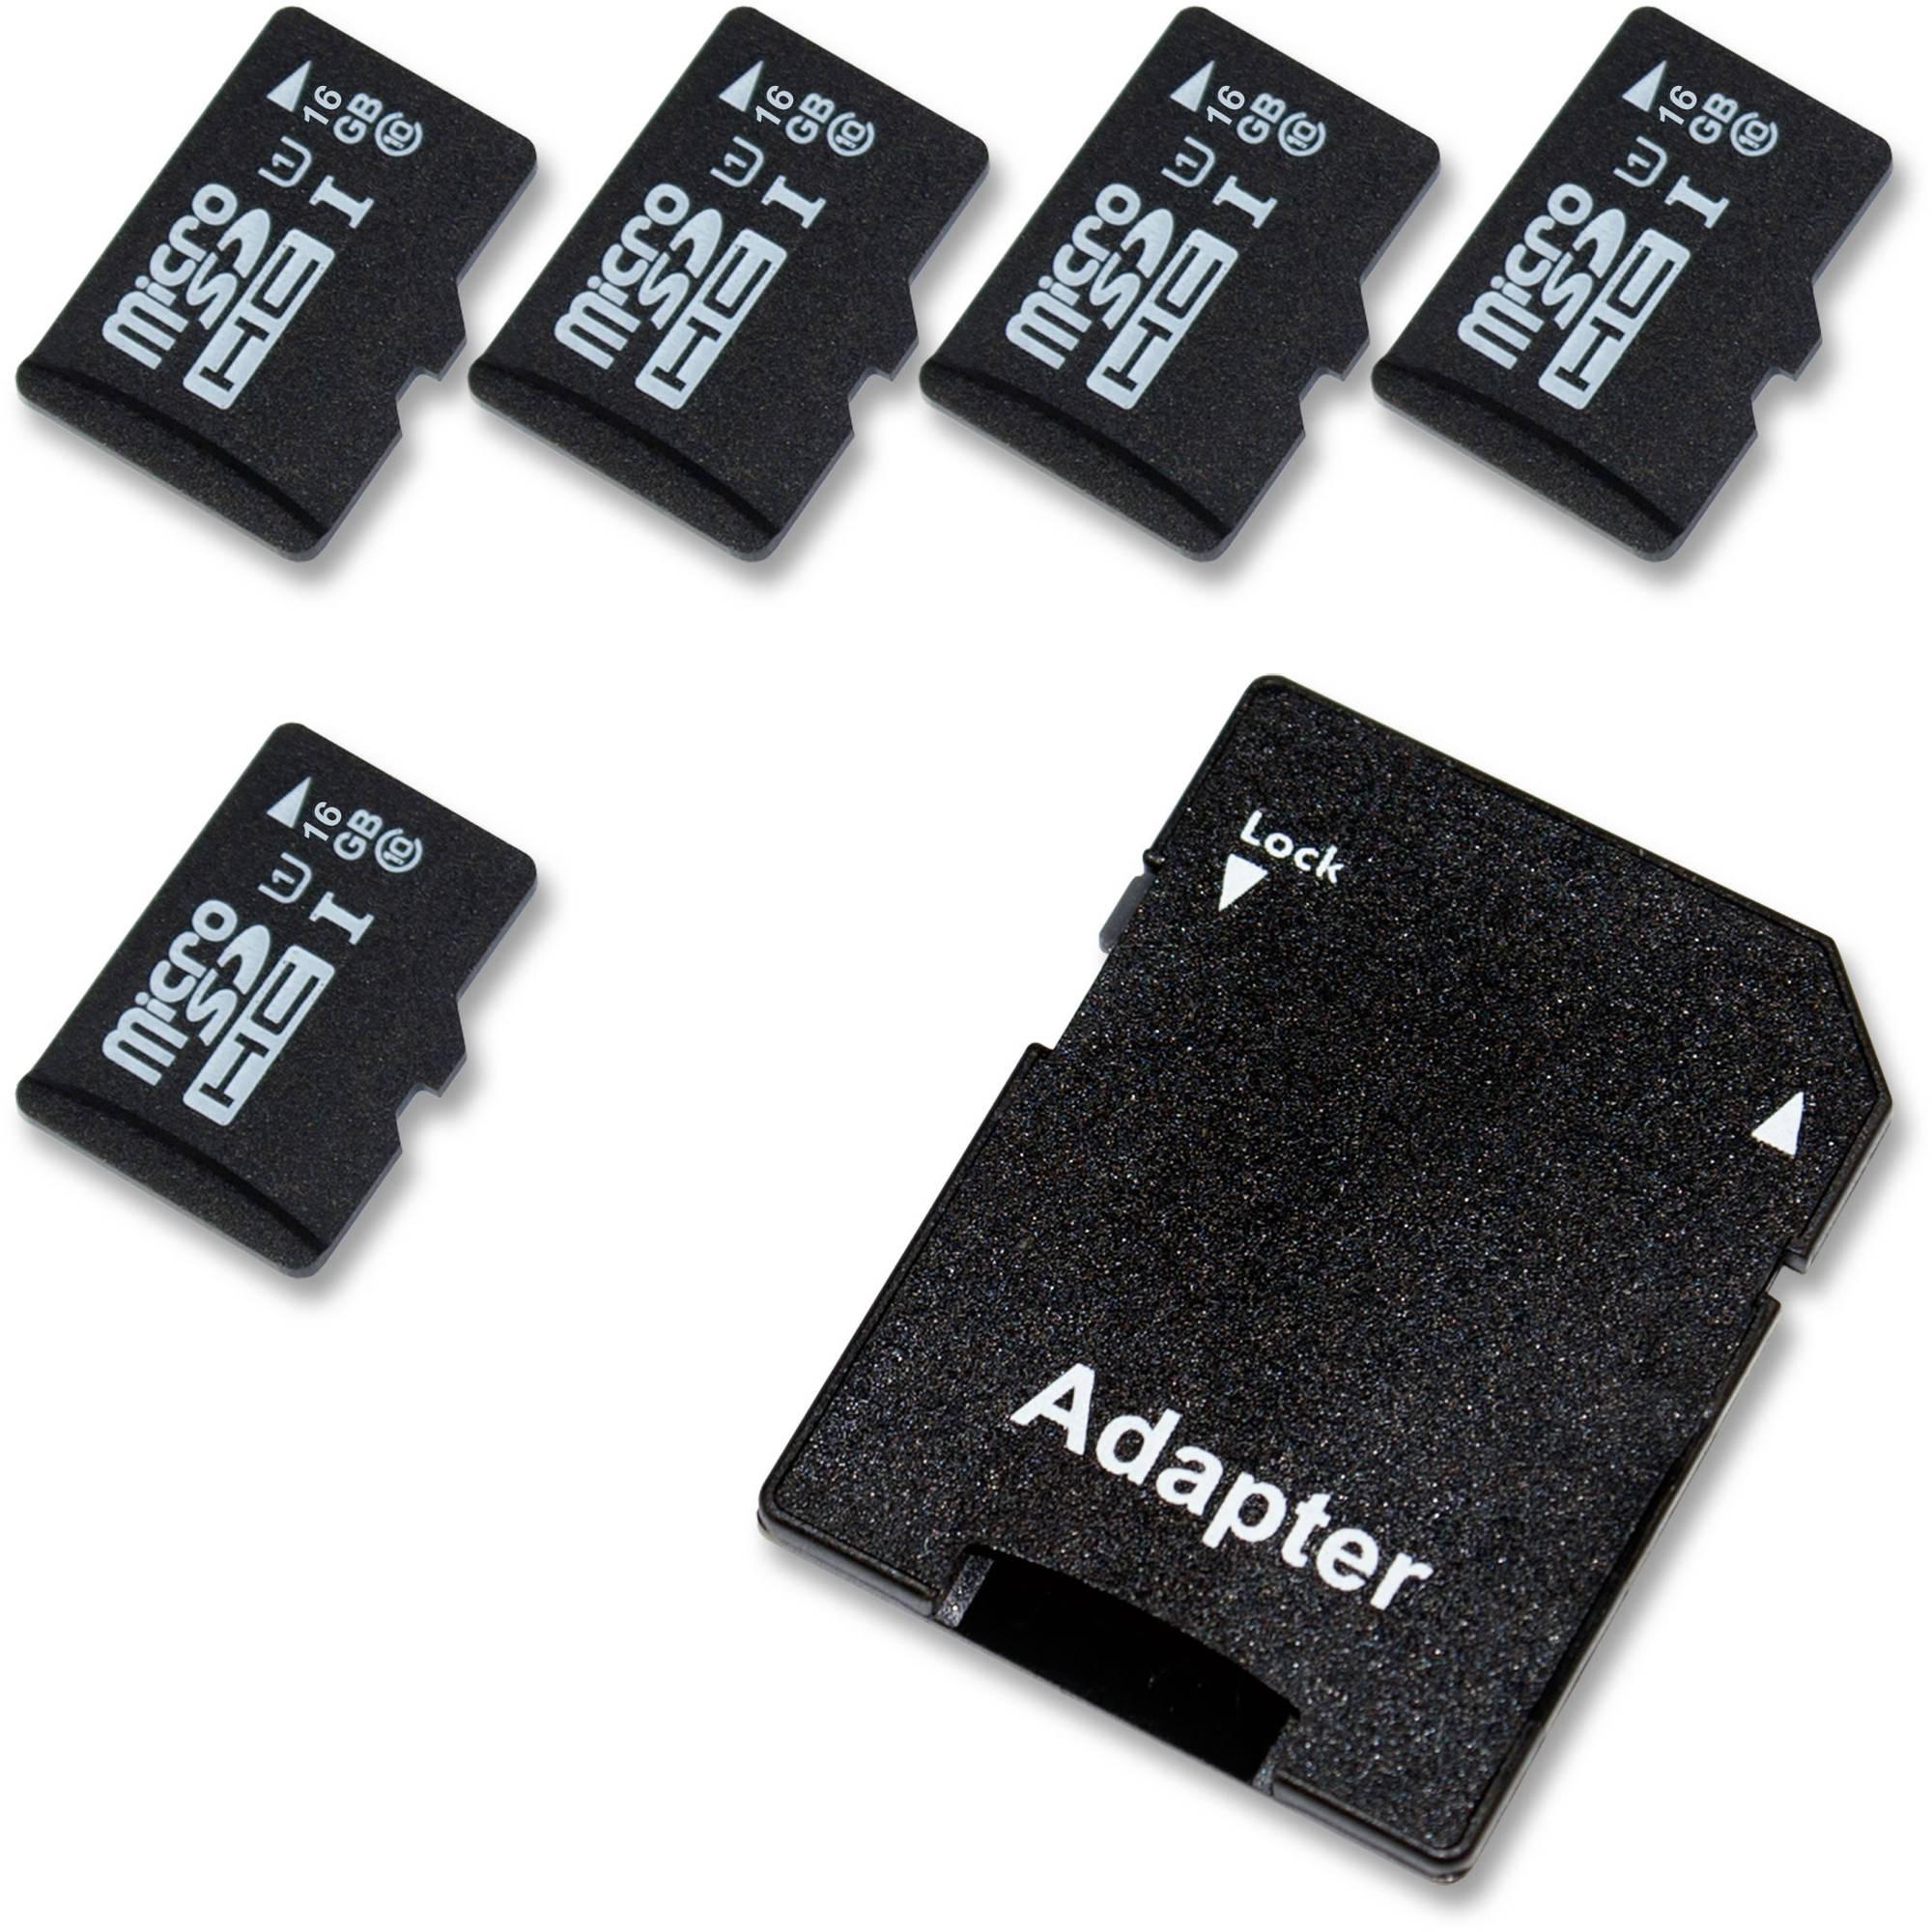 16GB GorillaFlash microSDHC Class 10 with Adapter 5-Pack